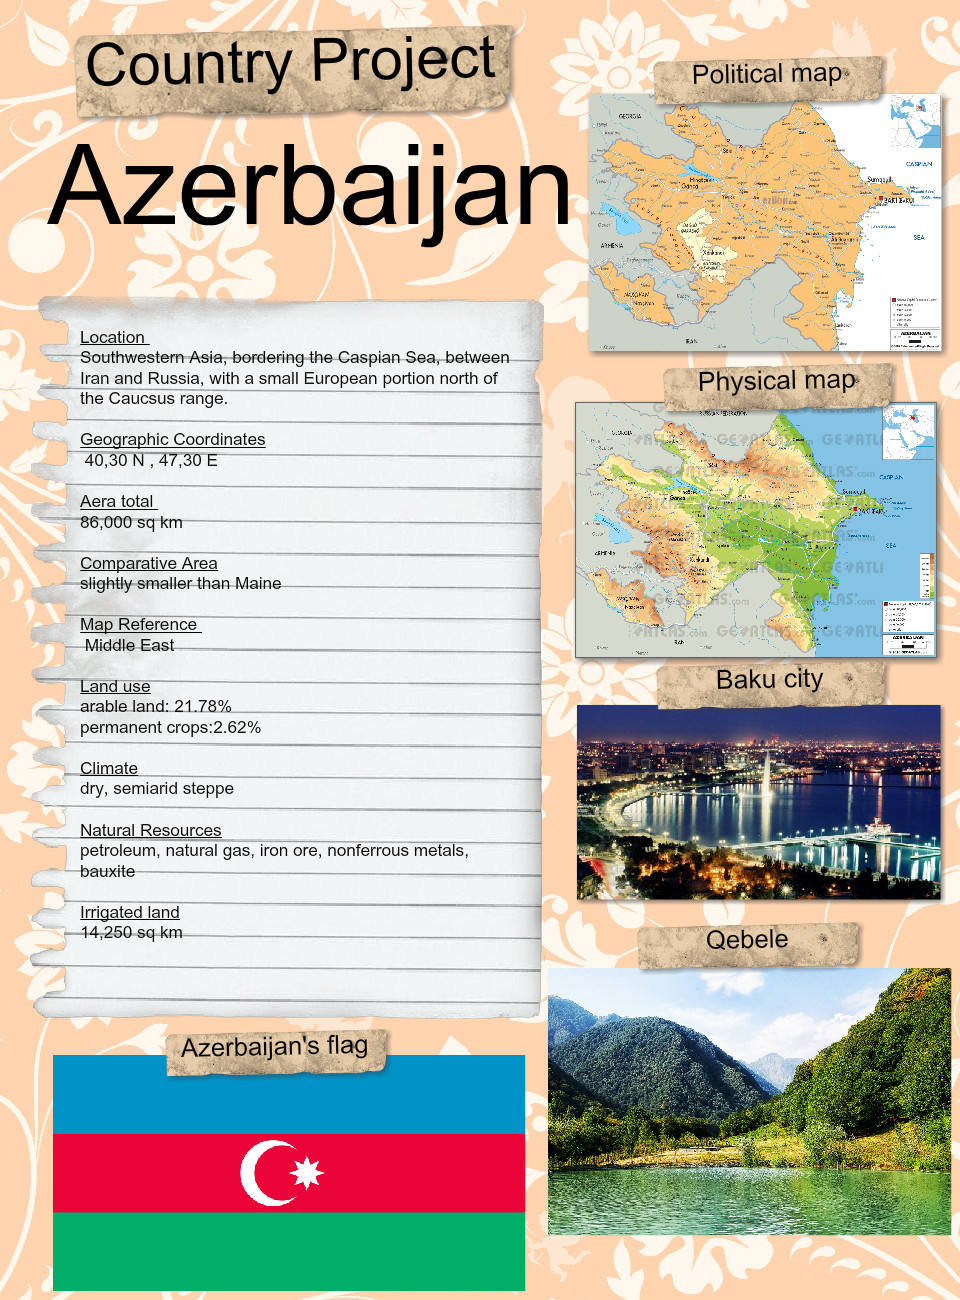 Country Project: Azerbaijan